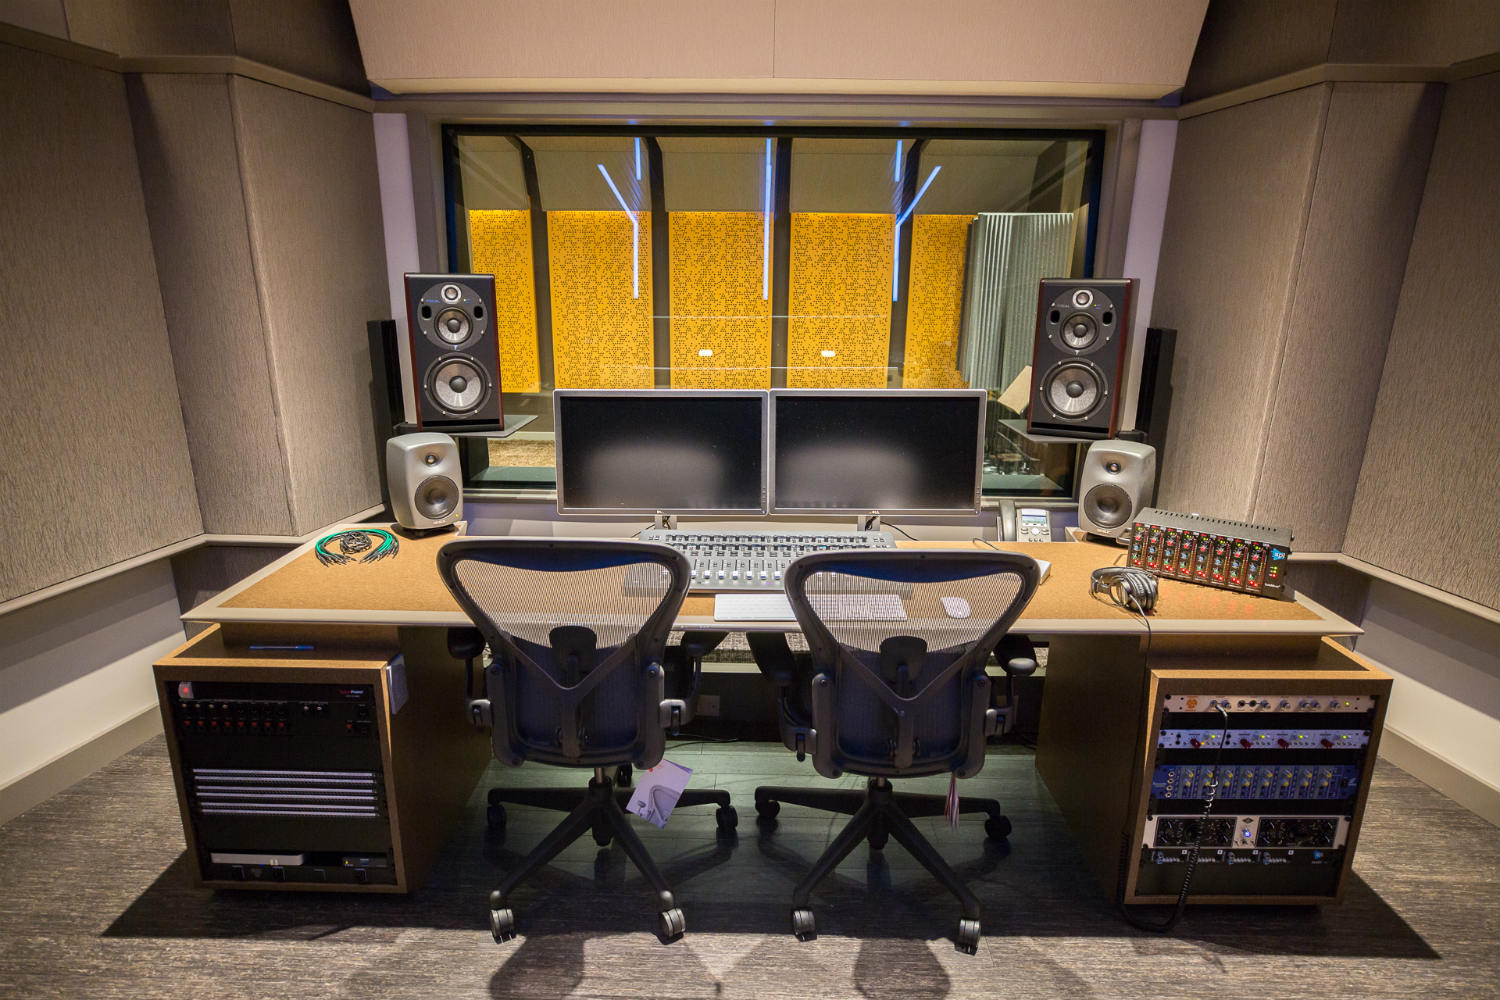 Audible is the world's largest producer/distributor of downloadable audiobooks and other spoken-word entertainment. WSDG was commissioned to design their new state-of-the-art recording studio complex. Control Room A